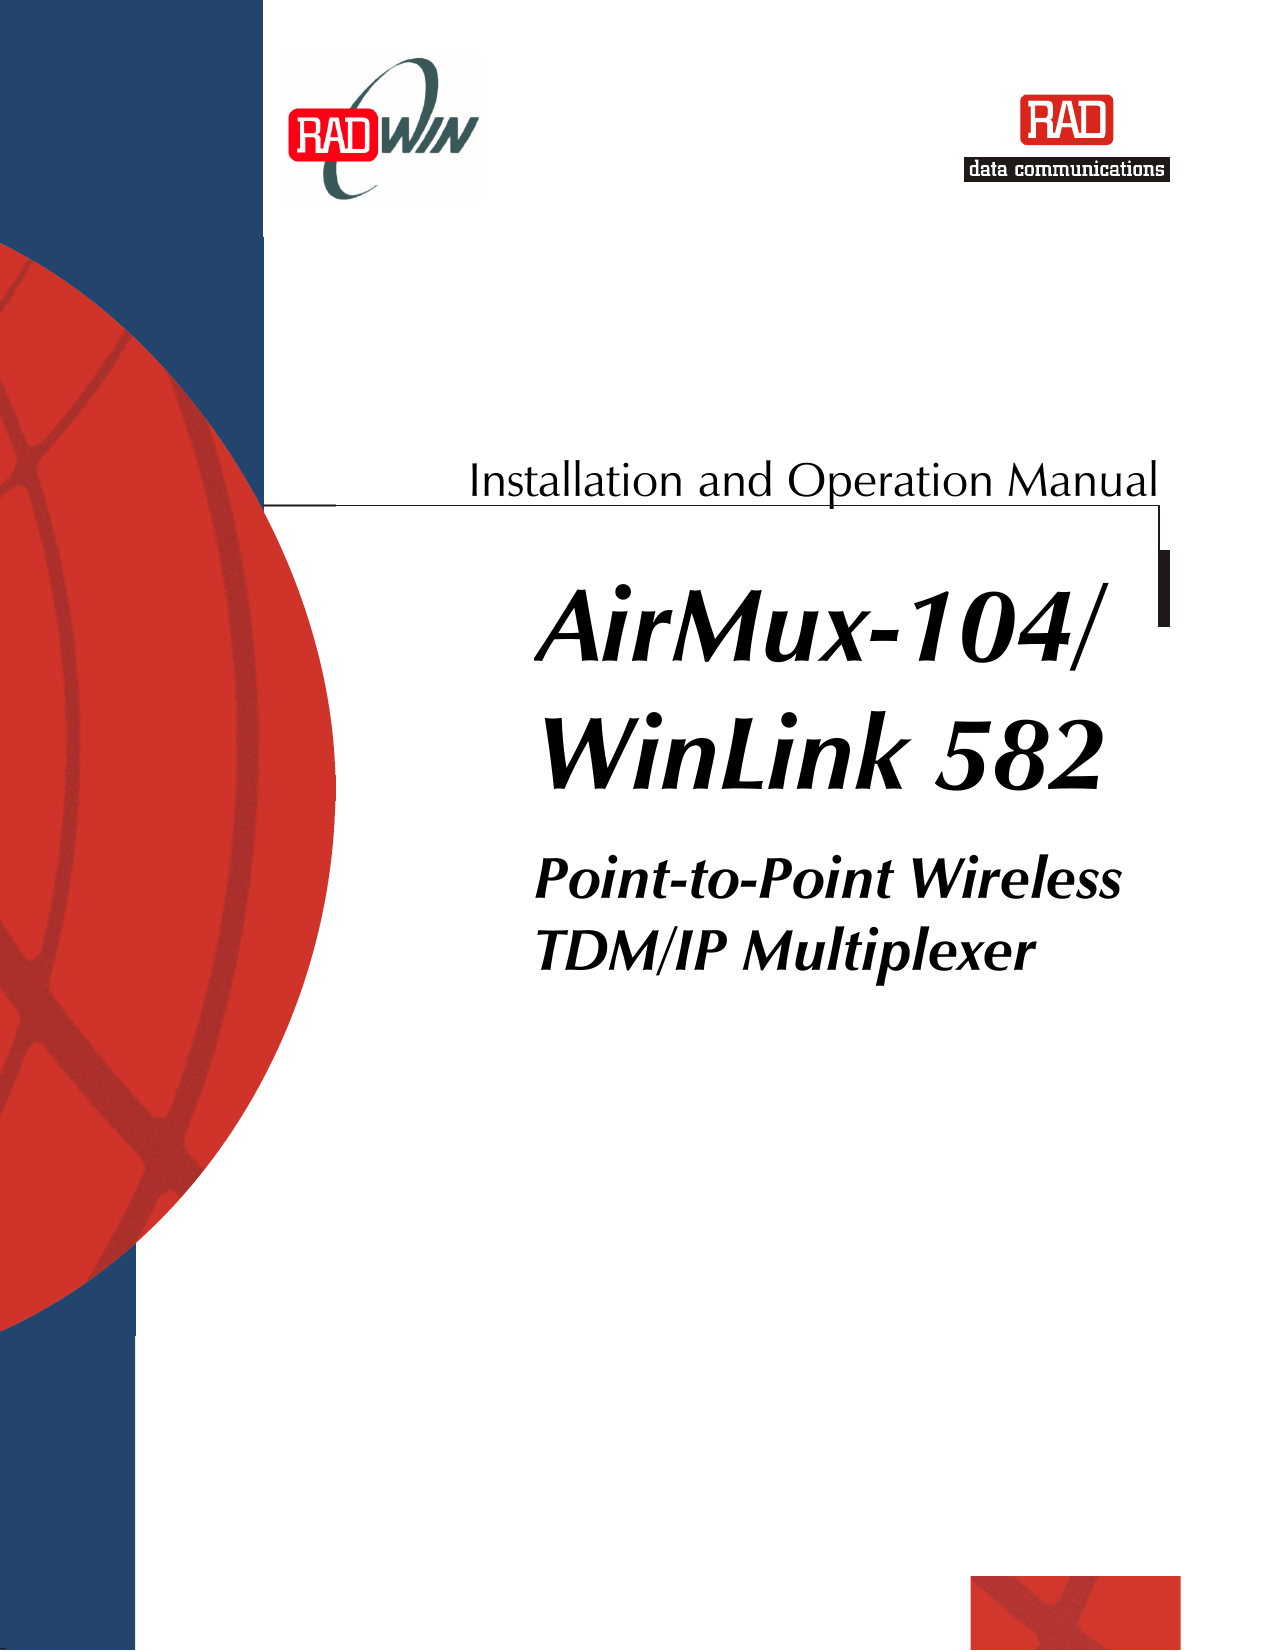 Radwin WINLINK Point to Point Wireless TX Discussion and FAQ Airmux